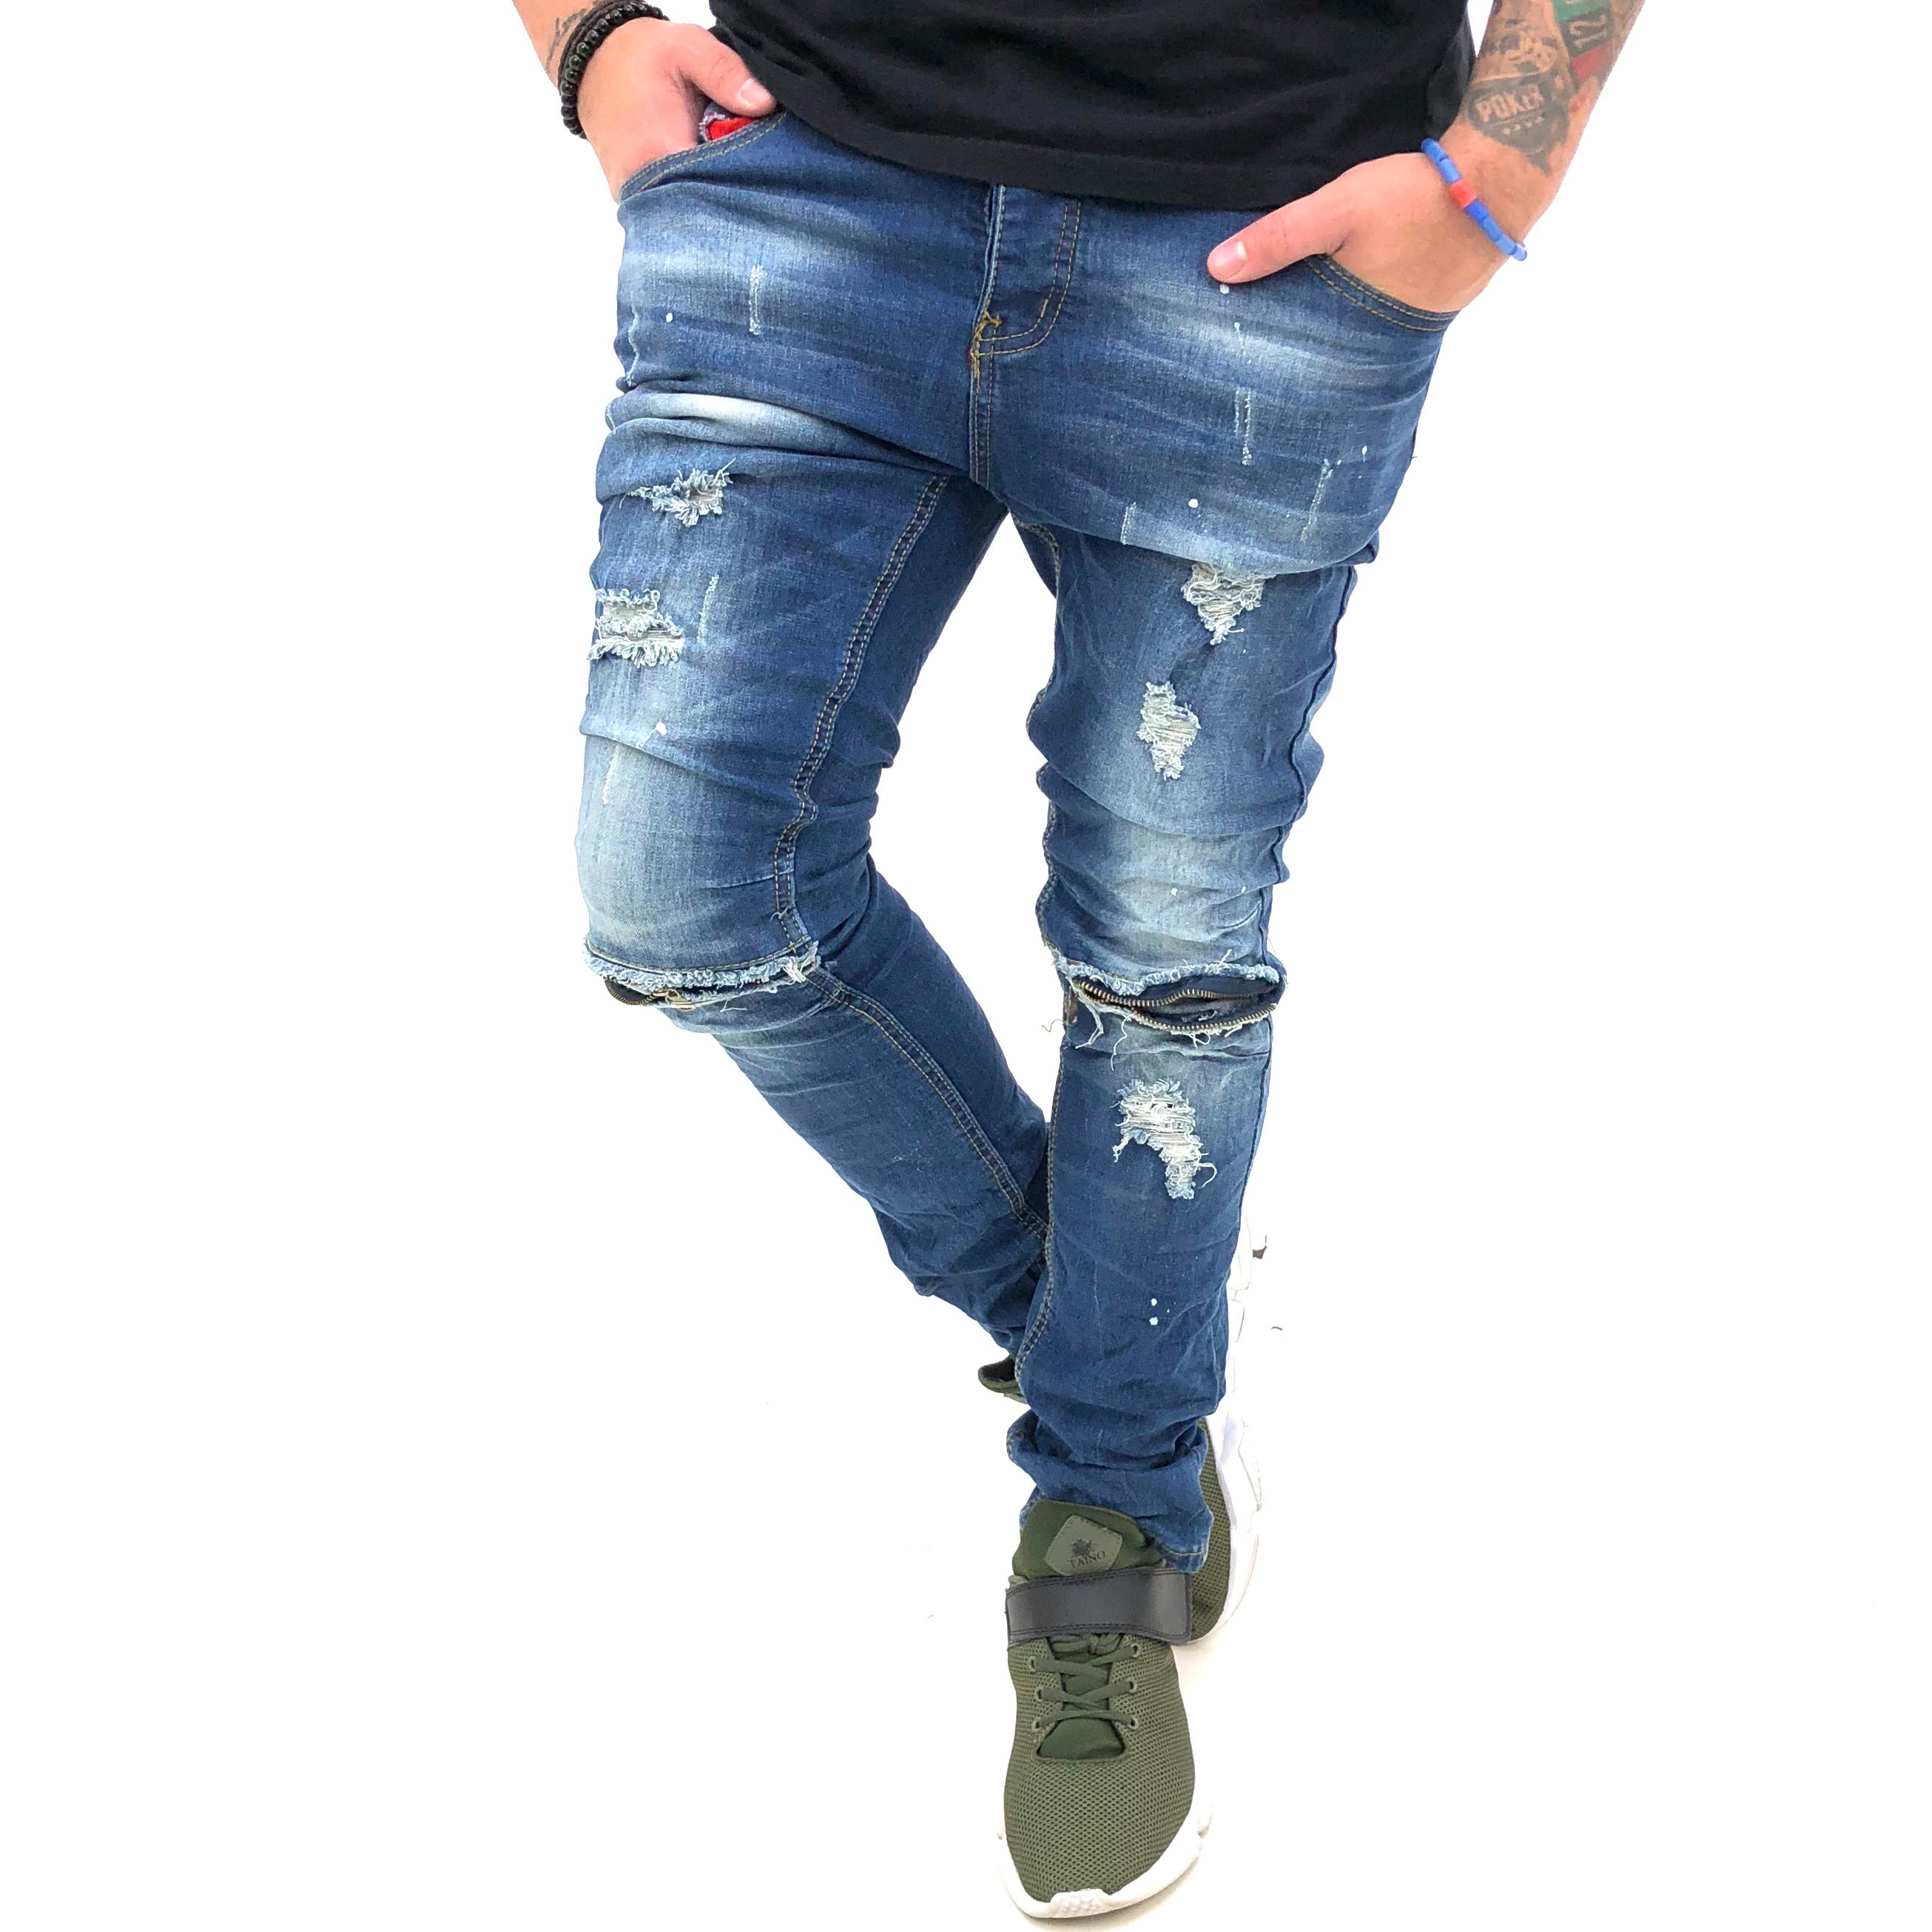 Jeans Denim Urban - Bacana Clothing + Shoes